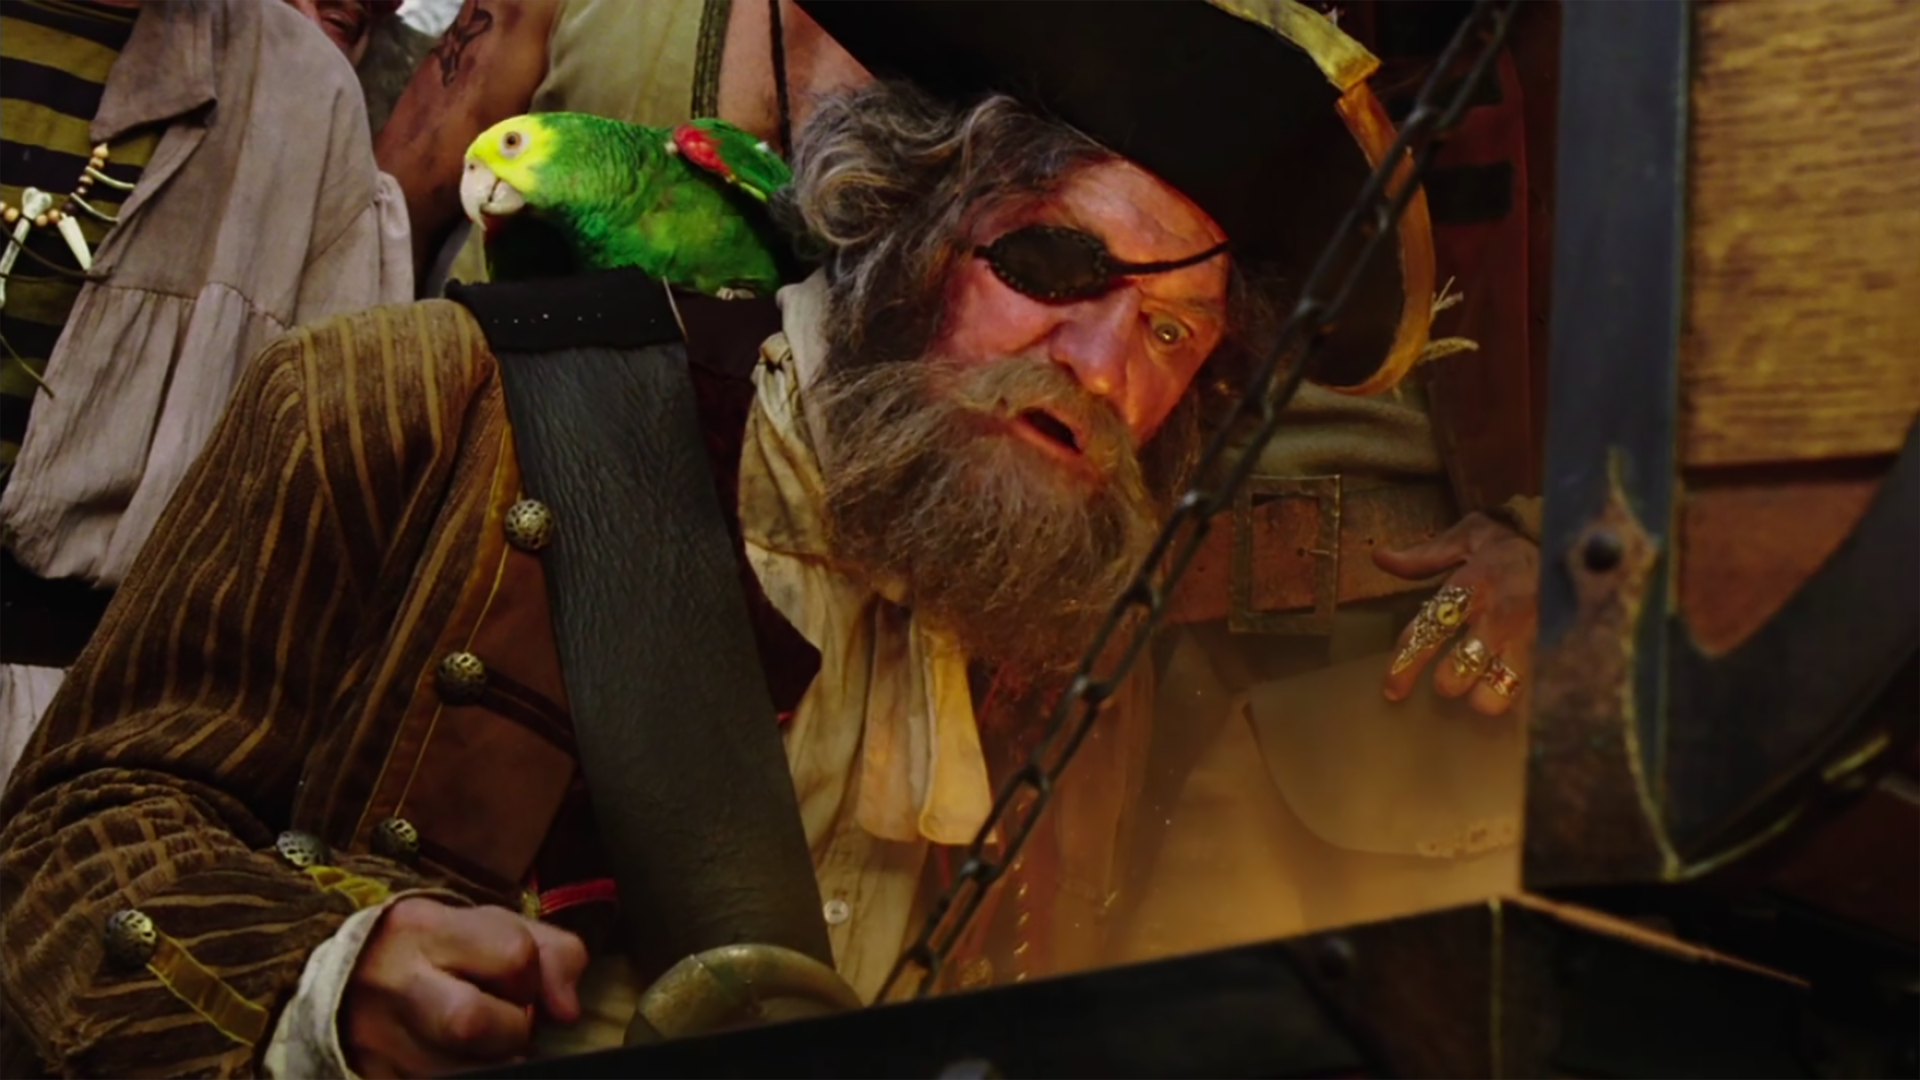 Captain Bart the Pirate/gallery